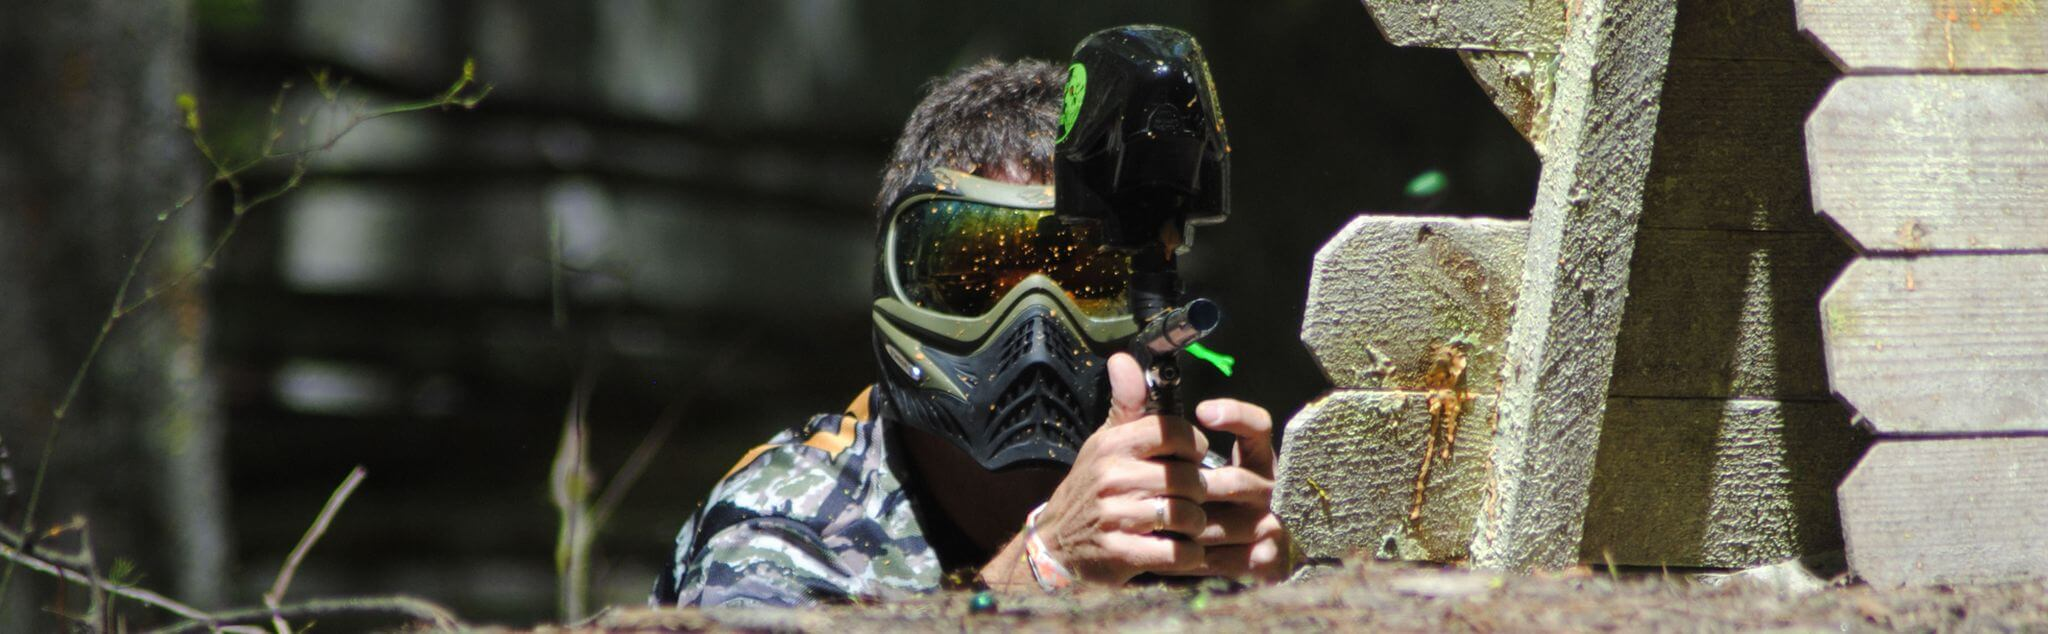 Paintball a San Pietro in Casale